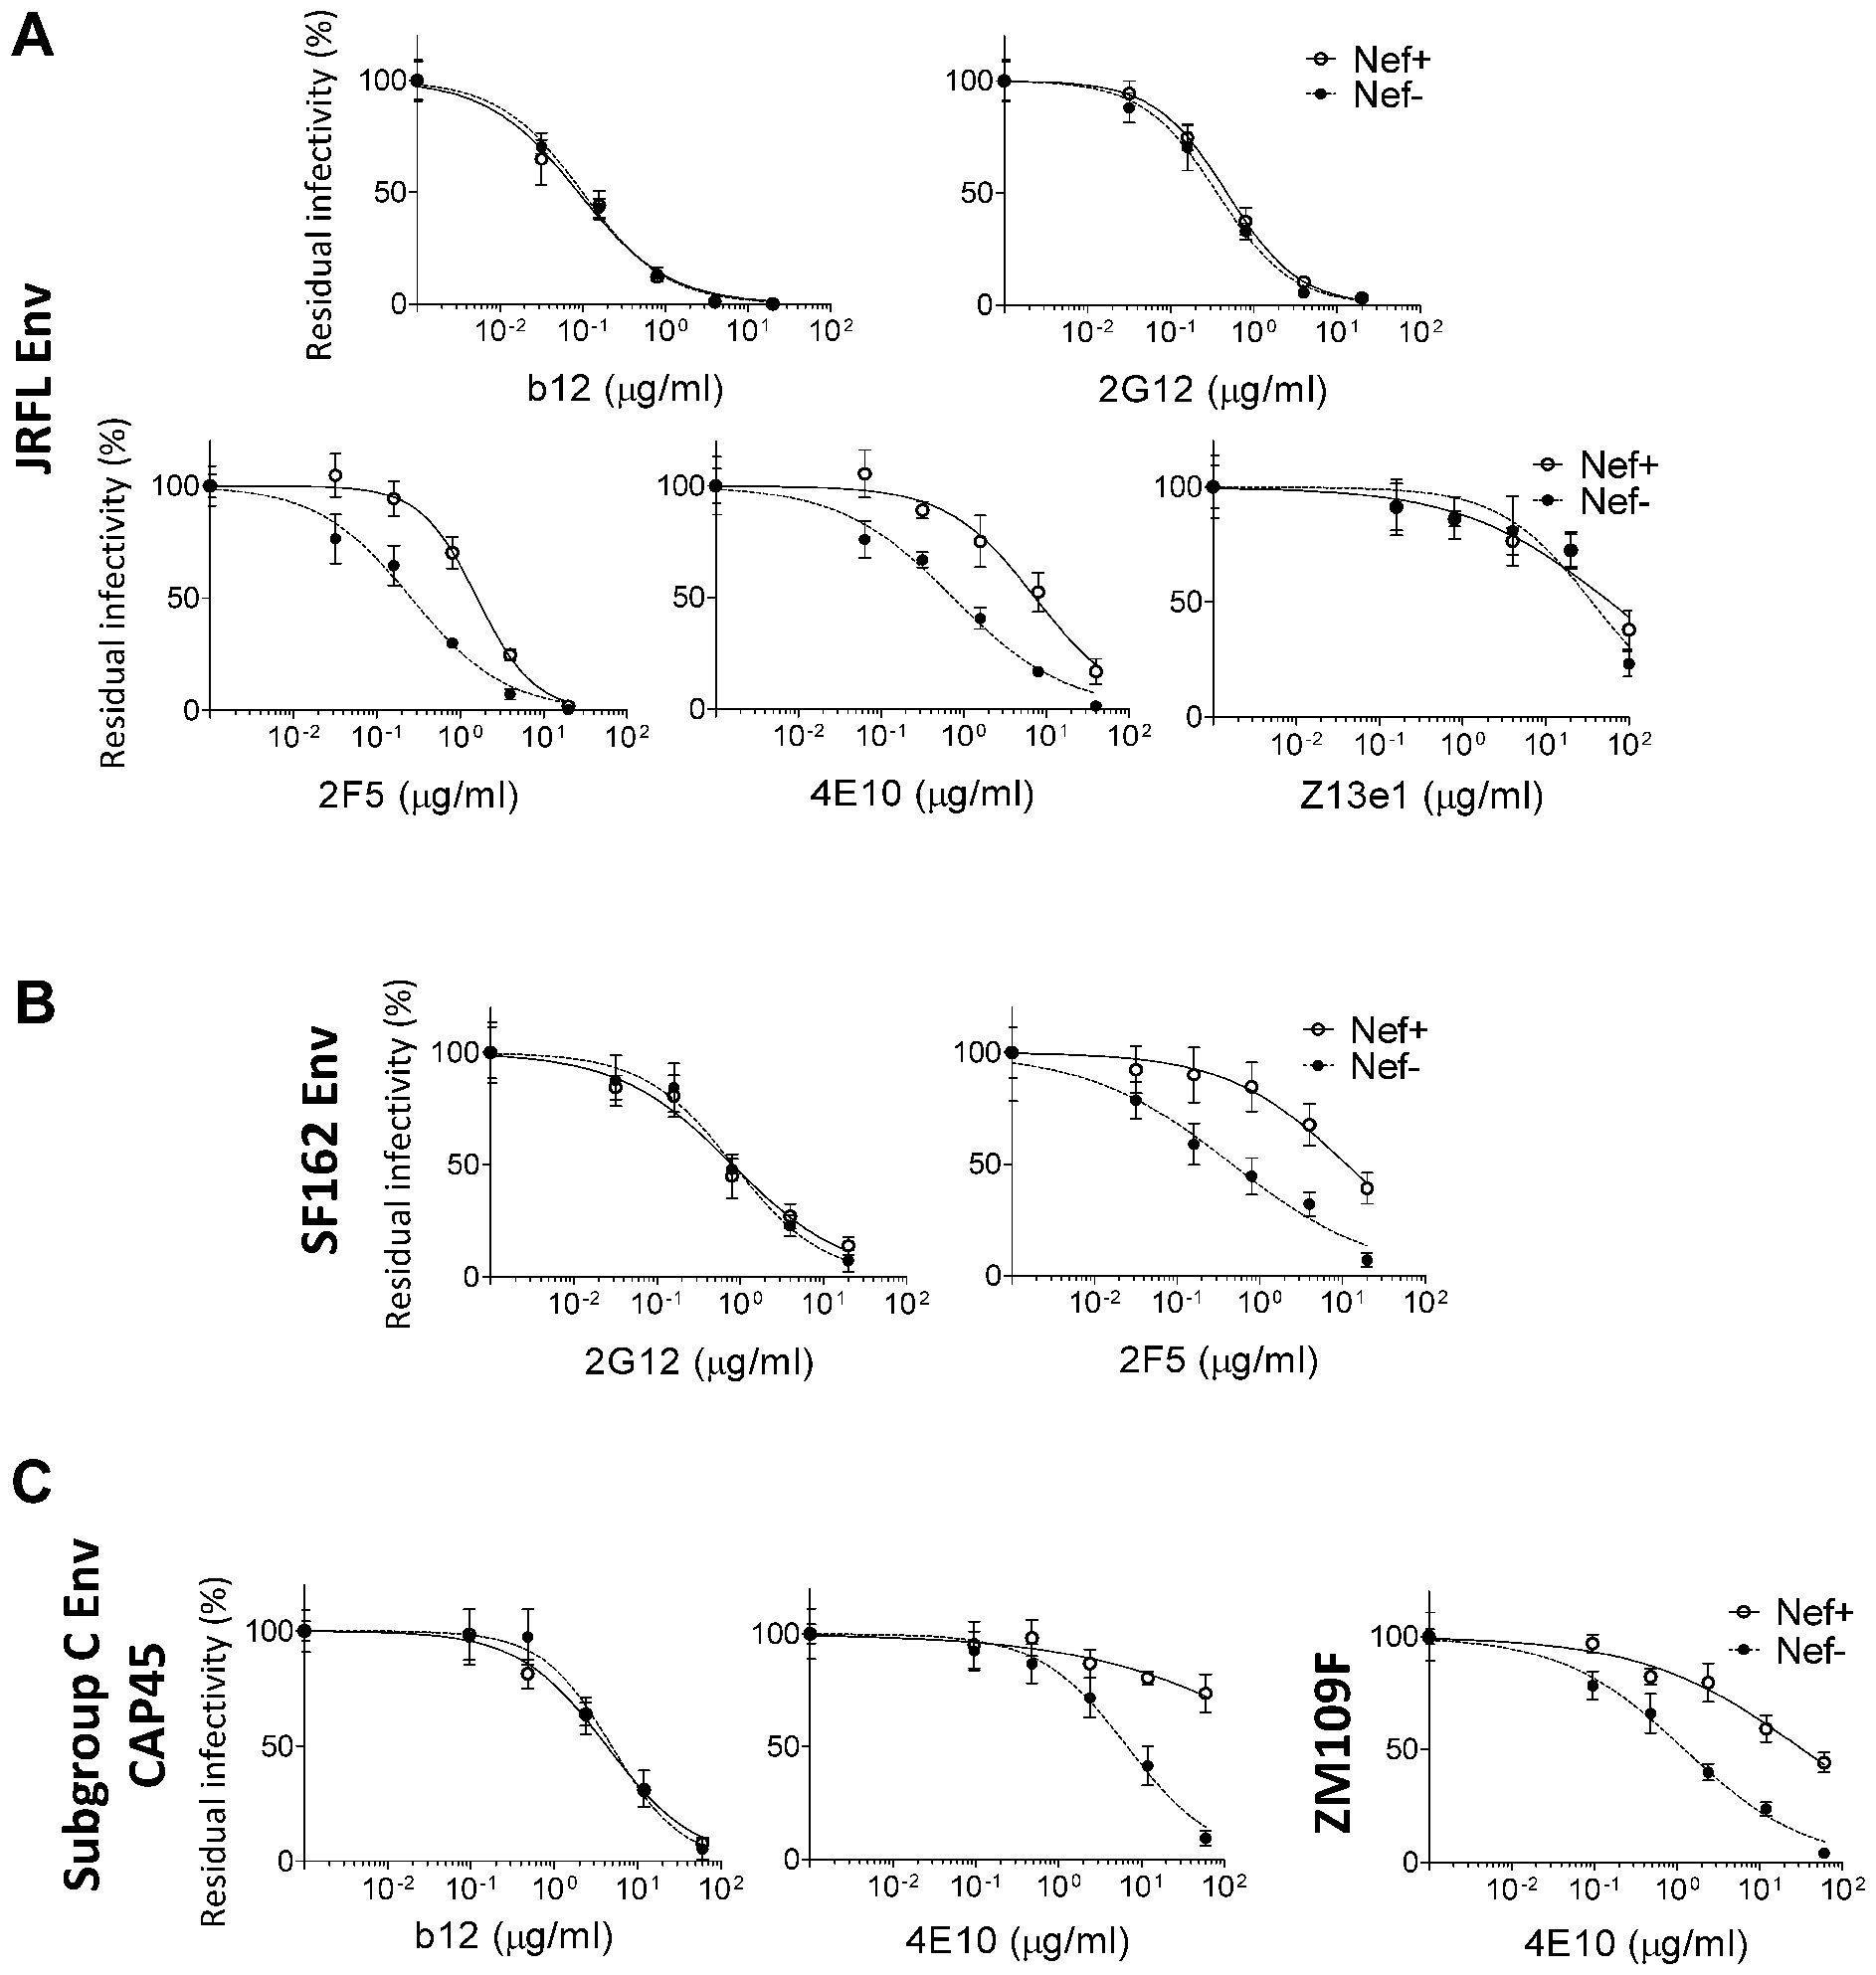 Virus particles pseudotyped with Env Glycoproteins derived from diverse HIV-1 isolates are responsive to the Nef effect on the susceptibility to 2F5 and 4E10.